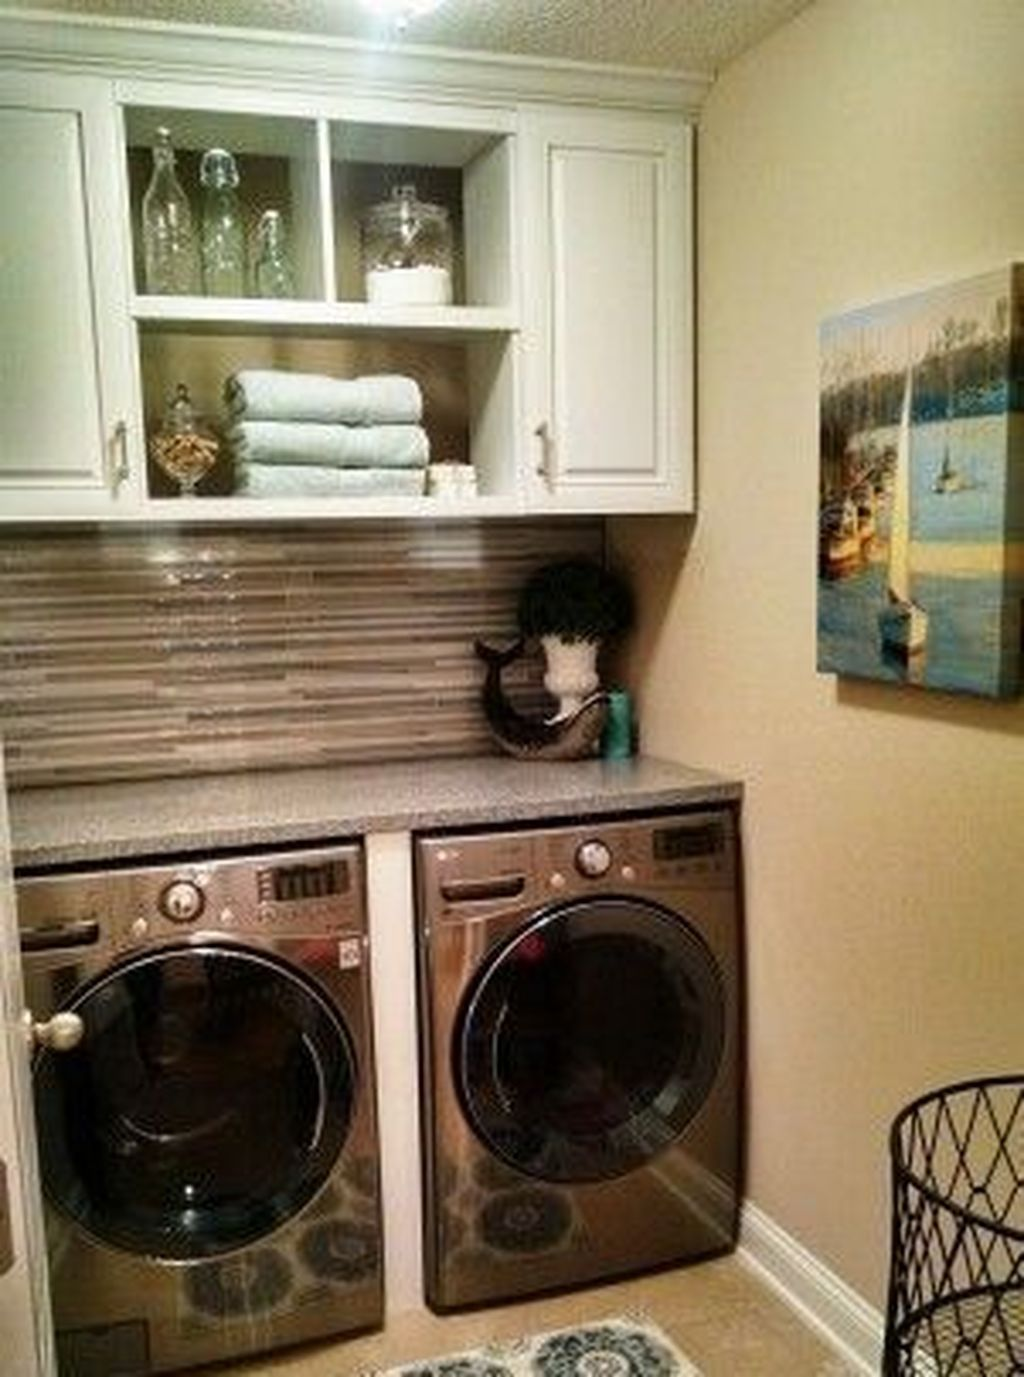 33 Minimalist Small Laundry Room Design And Decor Ideas | Home